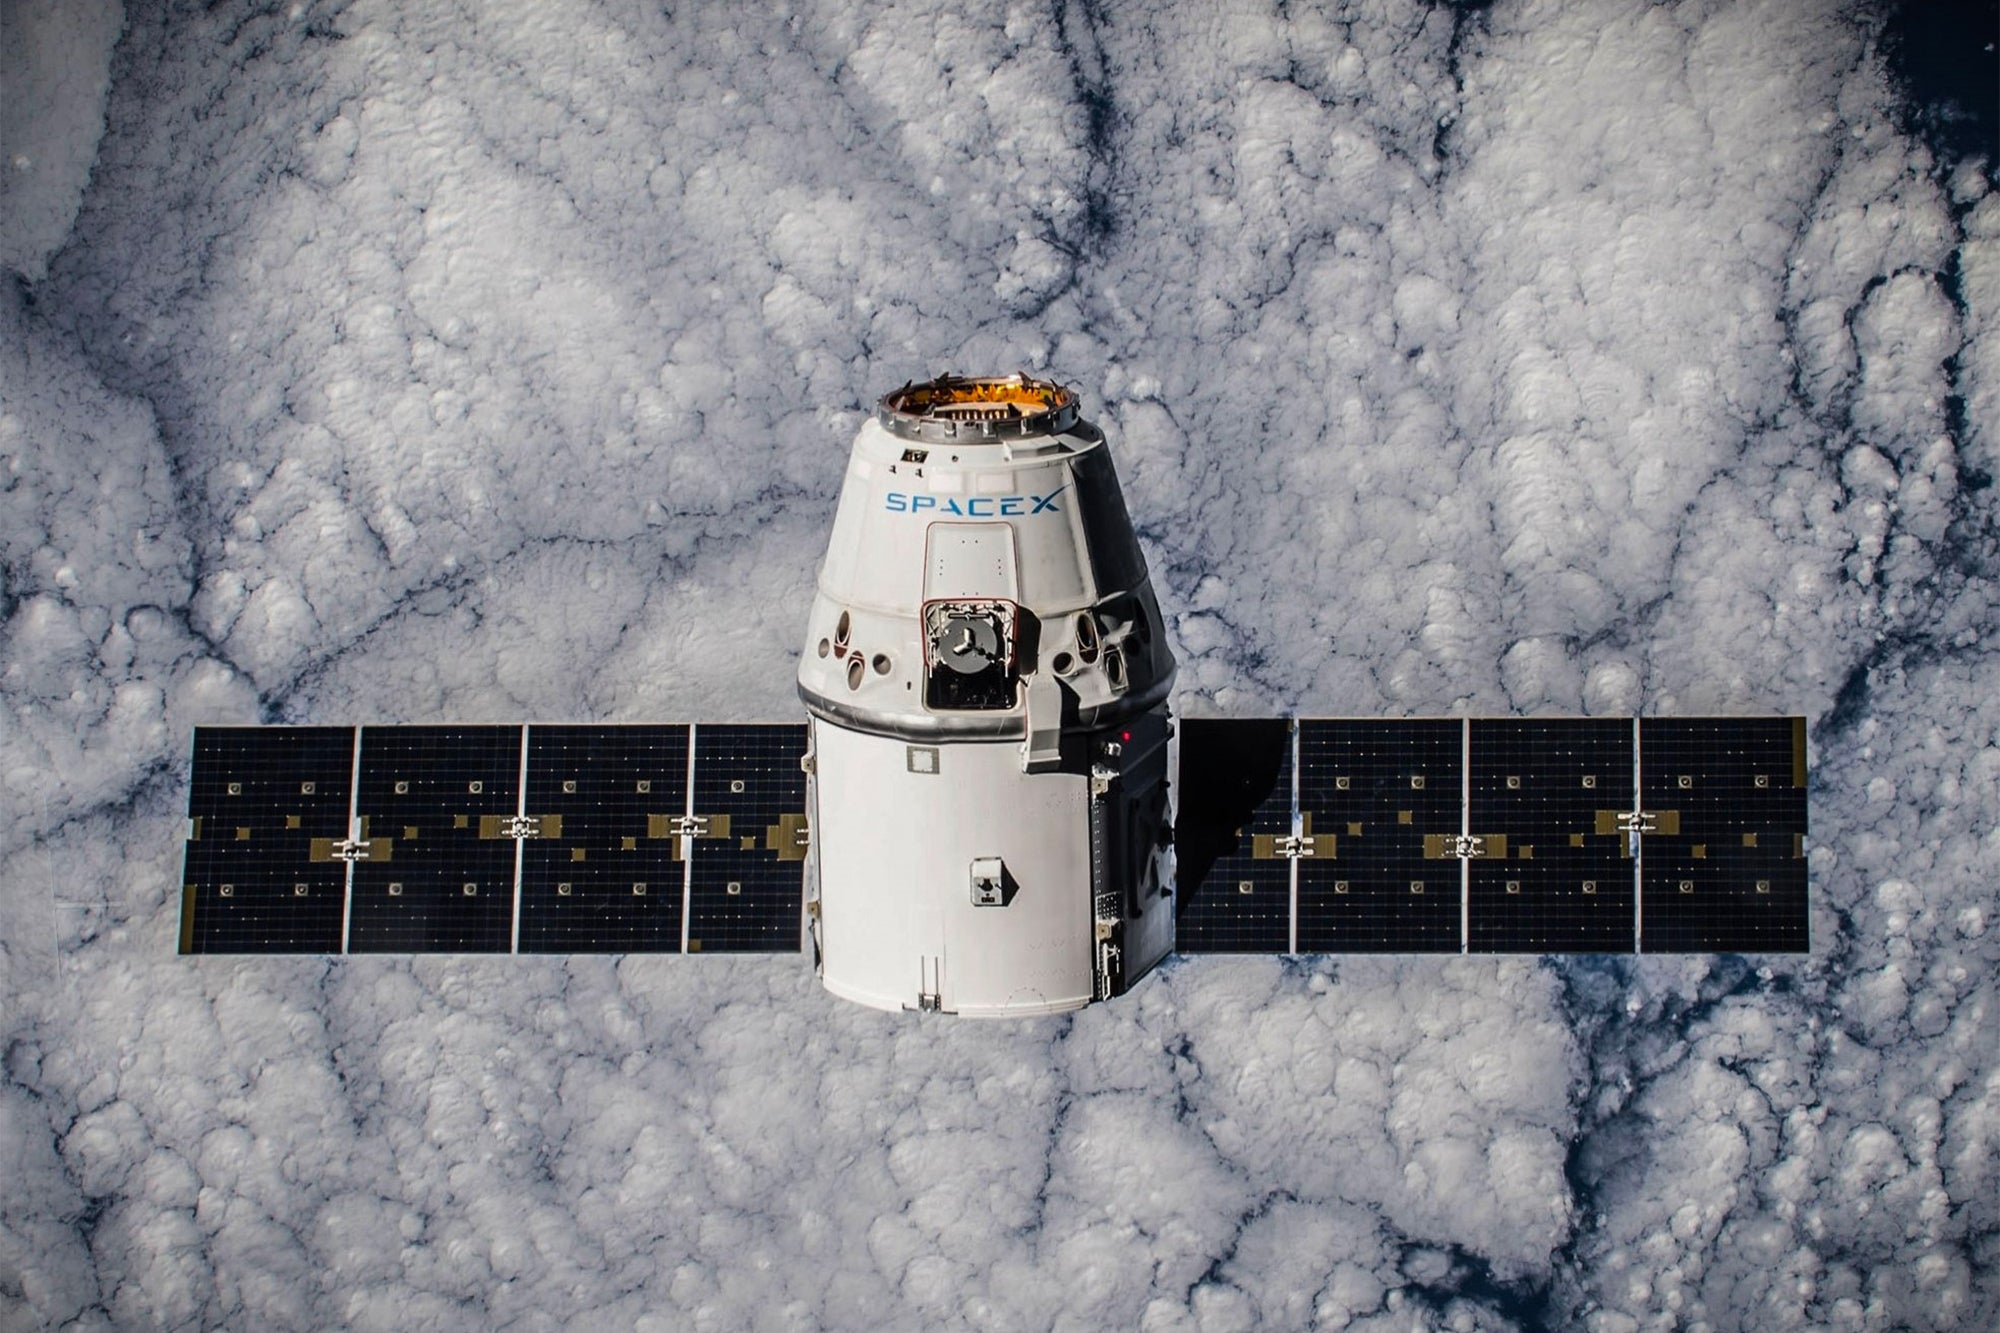 FCC Has 'Serious Doubts' SpaceX Starlink Can Deliver a Low Latency Internet Service